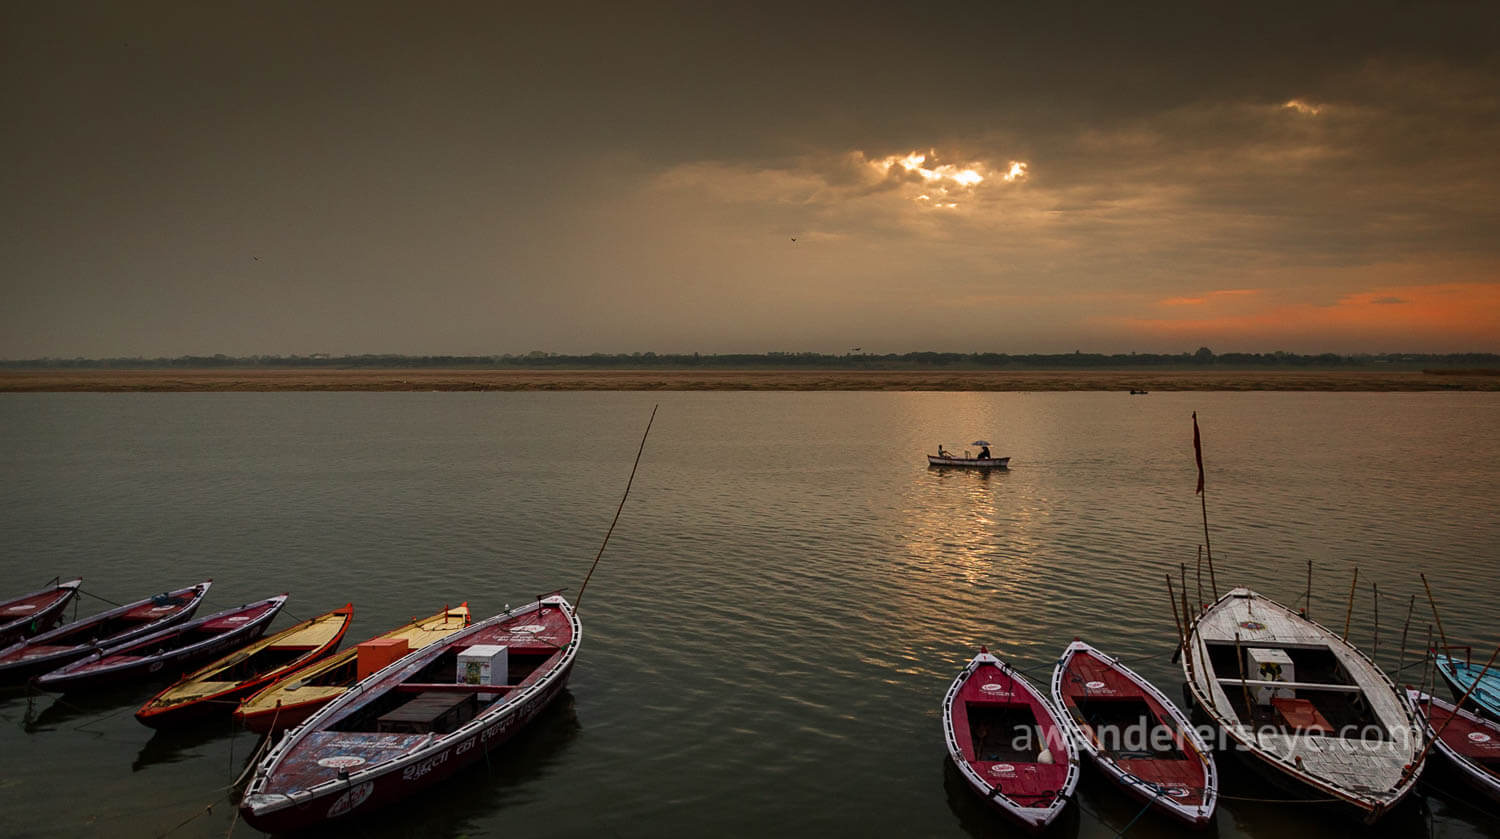 The sun rises over the sacred Ganges river in Varanasi.